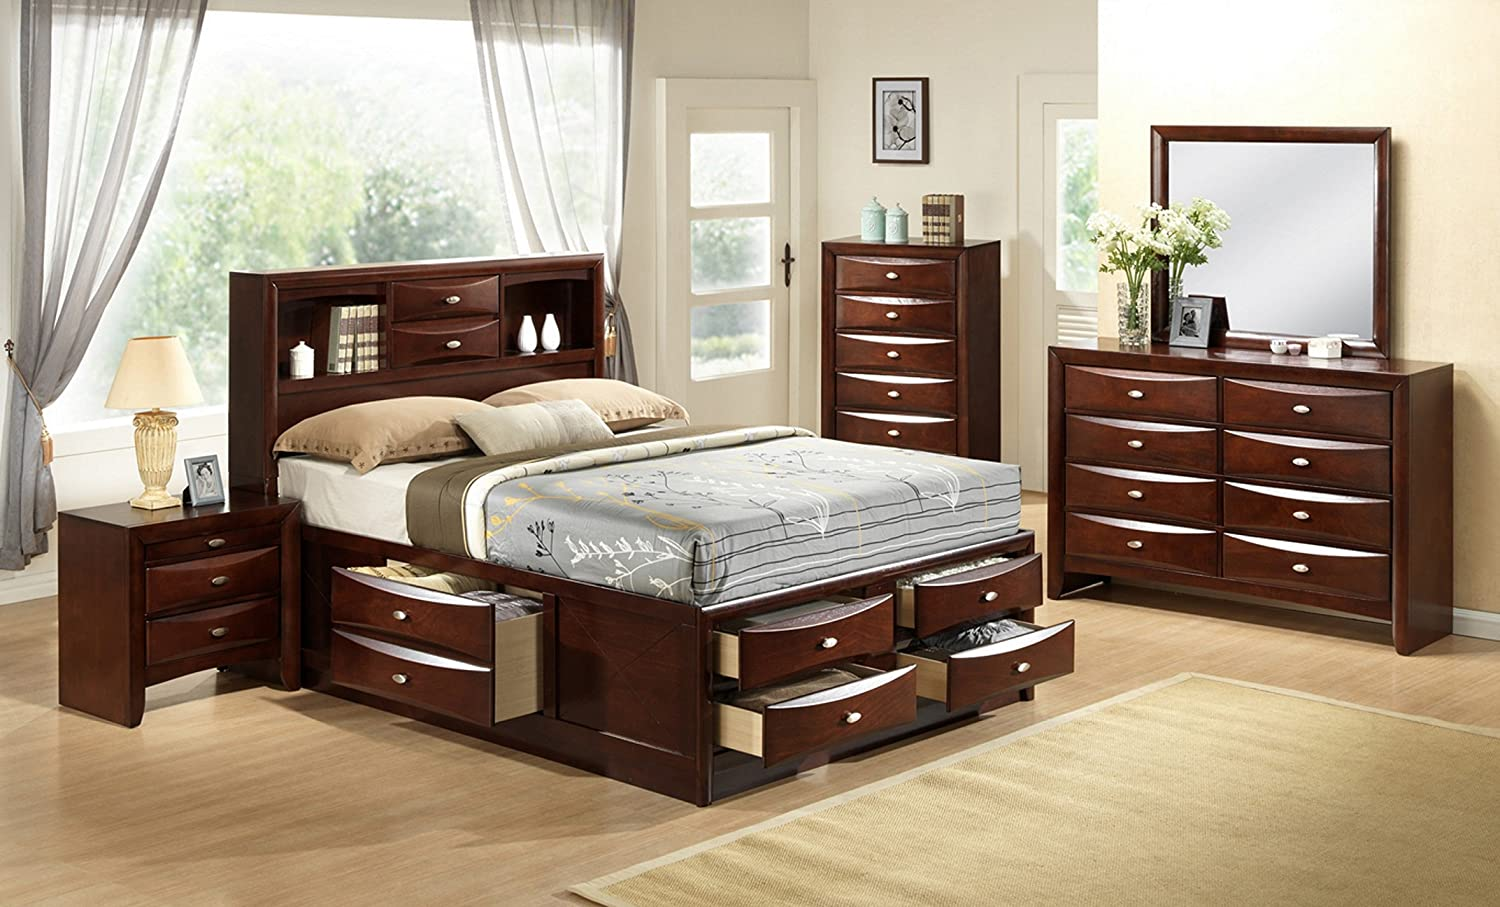 Amazon.com: Roundhill Furniture Emily 111 Wood Storage Bed, Queen ...